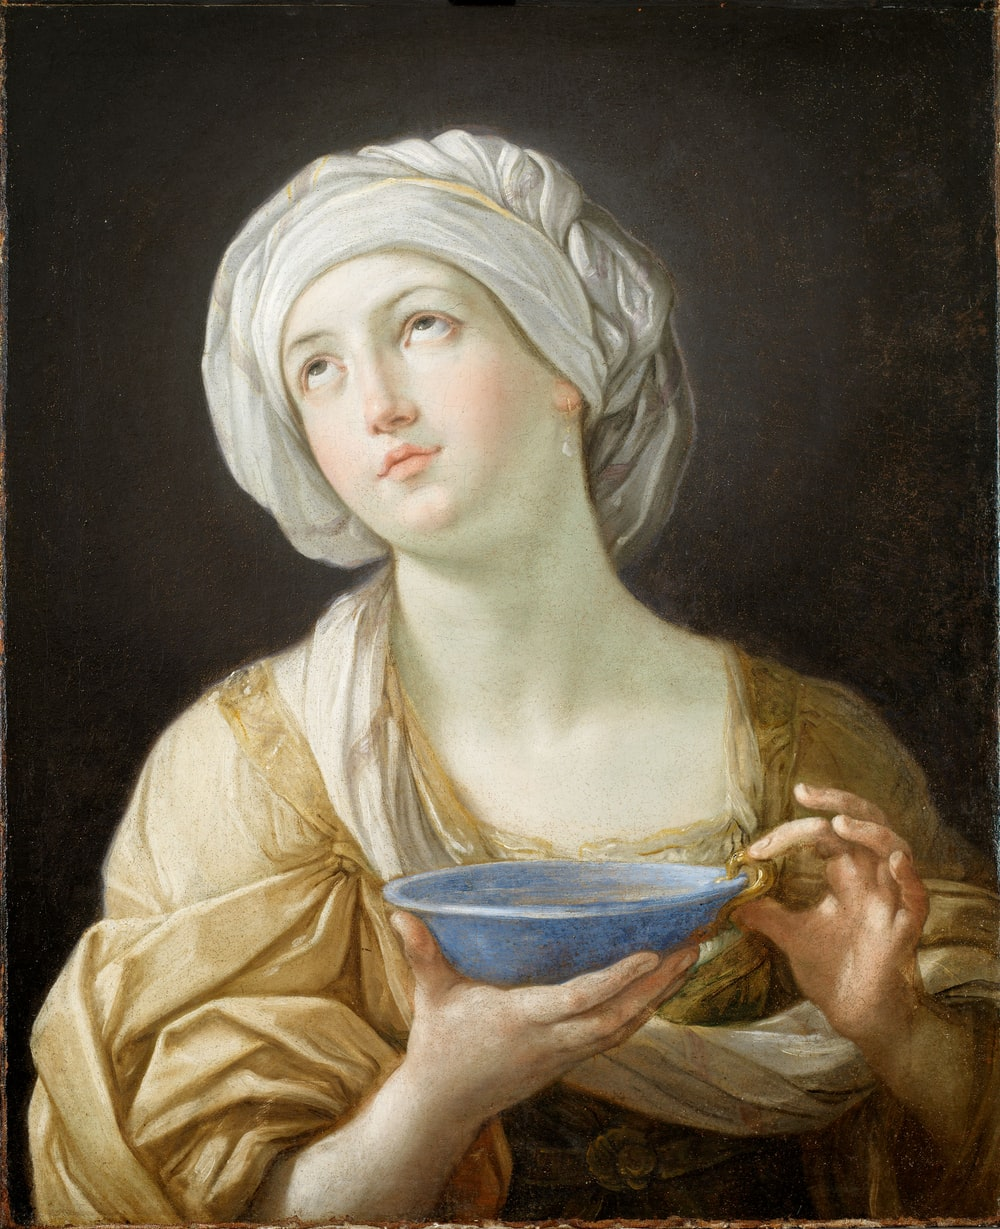 woman wearing white headdress while holding blue bowl painting